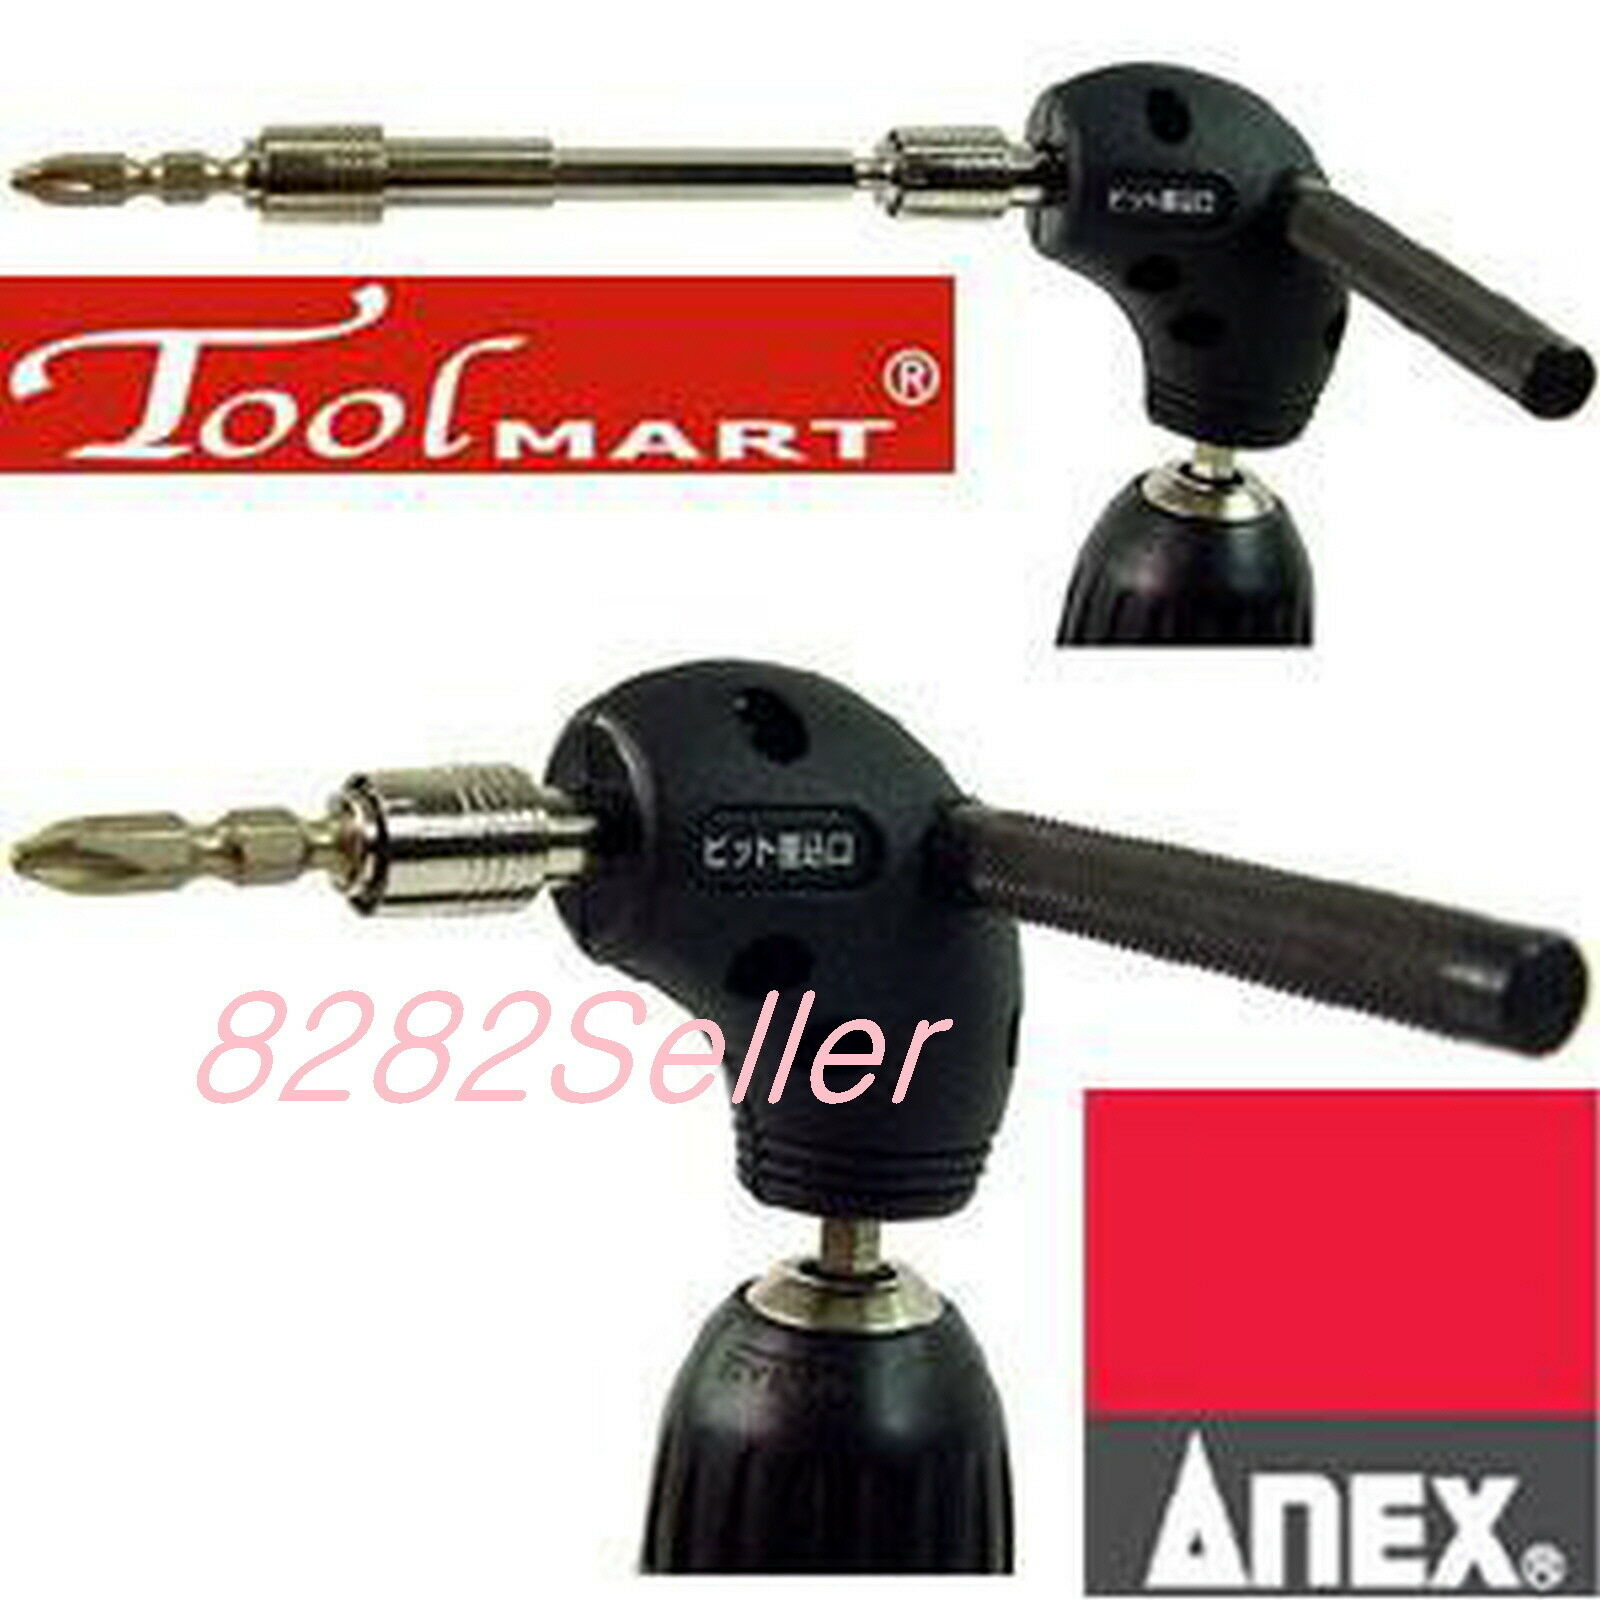 ANEX AKL-520 PoweROT Screwdriver L type Extension Adapterr Fixed handle 90mm NEW